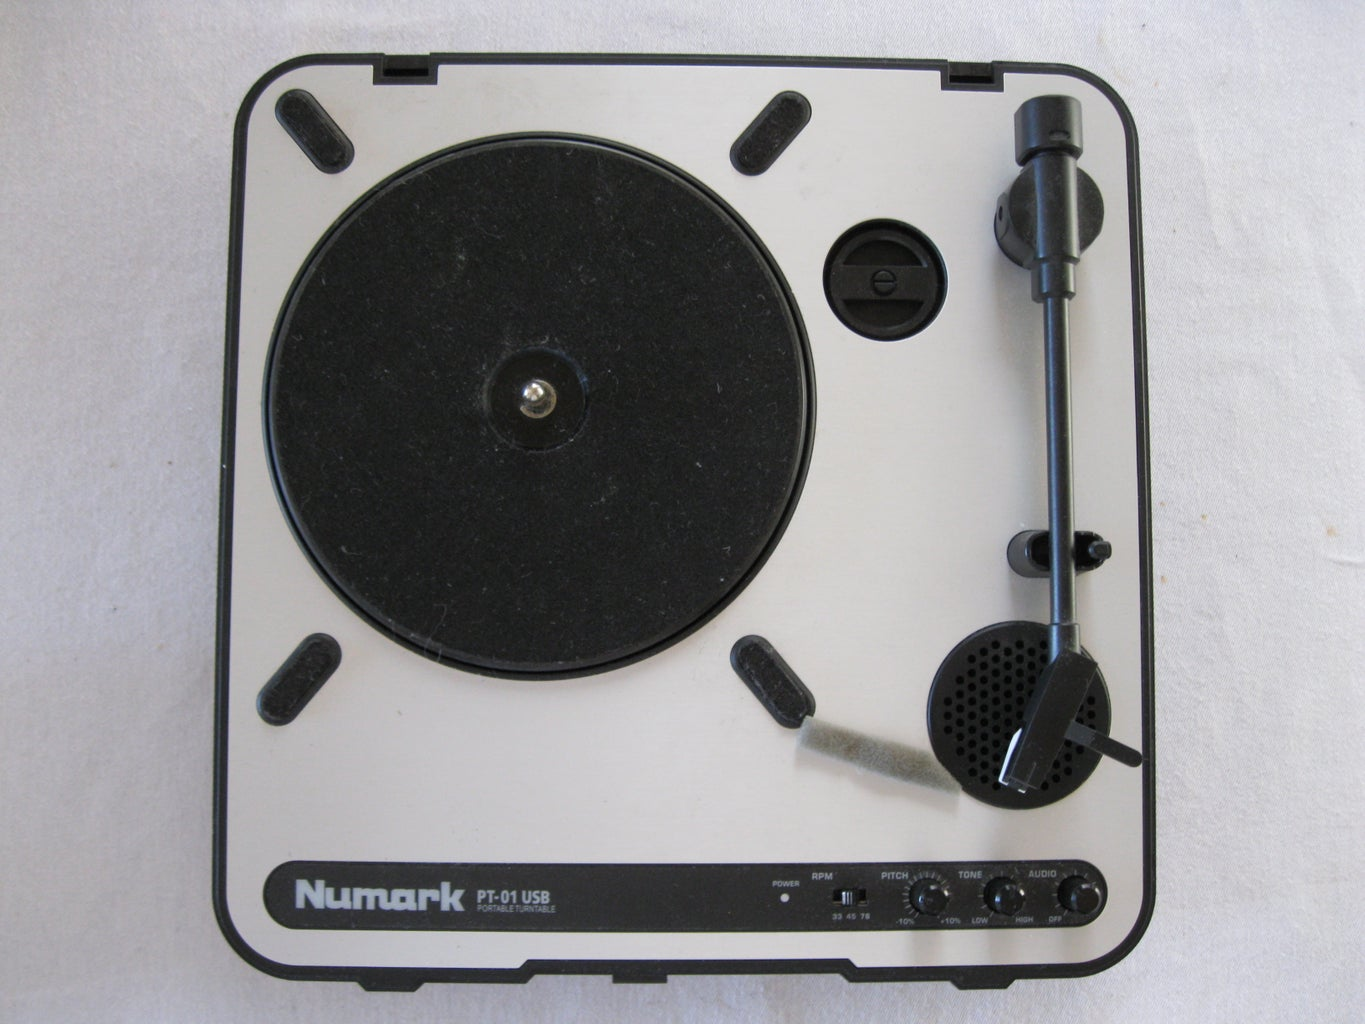 Method 3: Dubbing With a Cassette Deck With Records As the Source